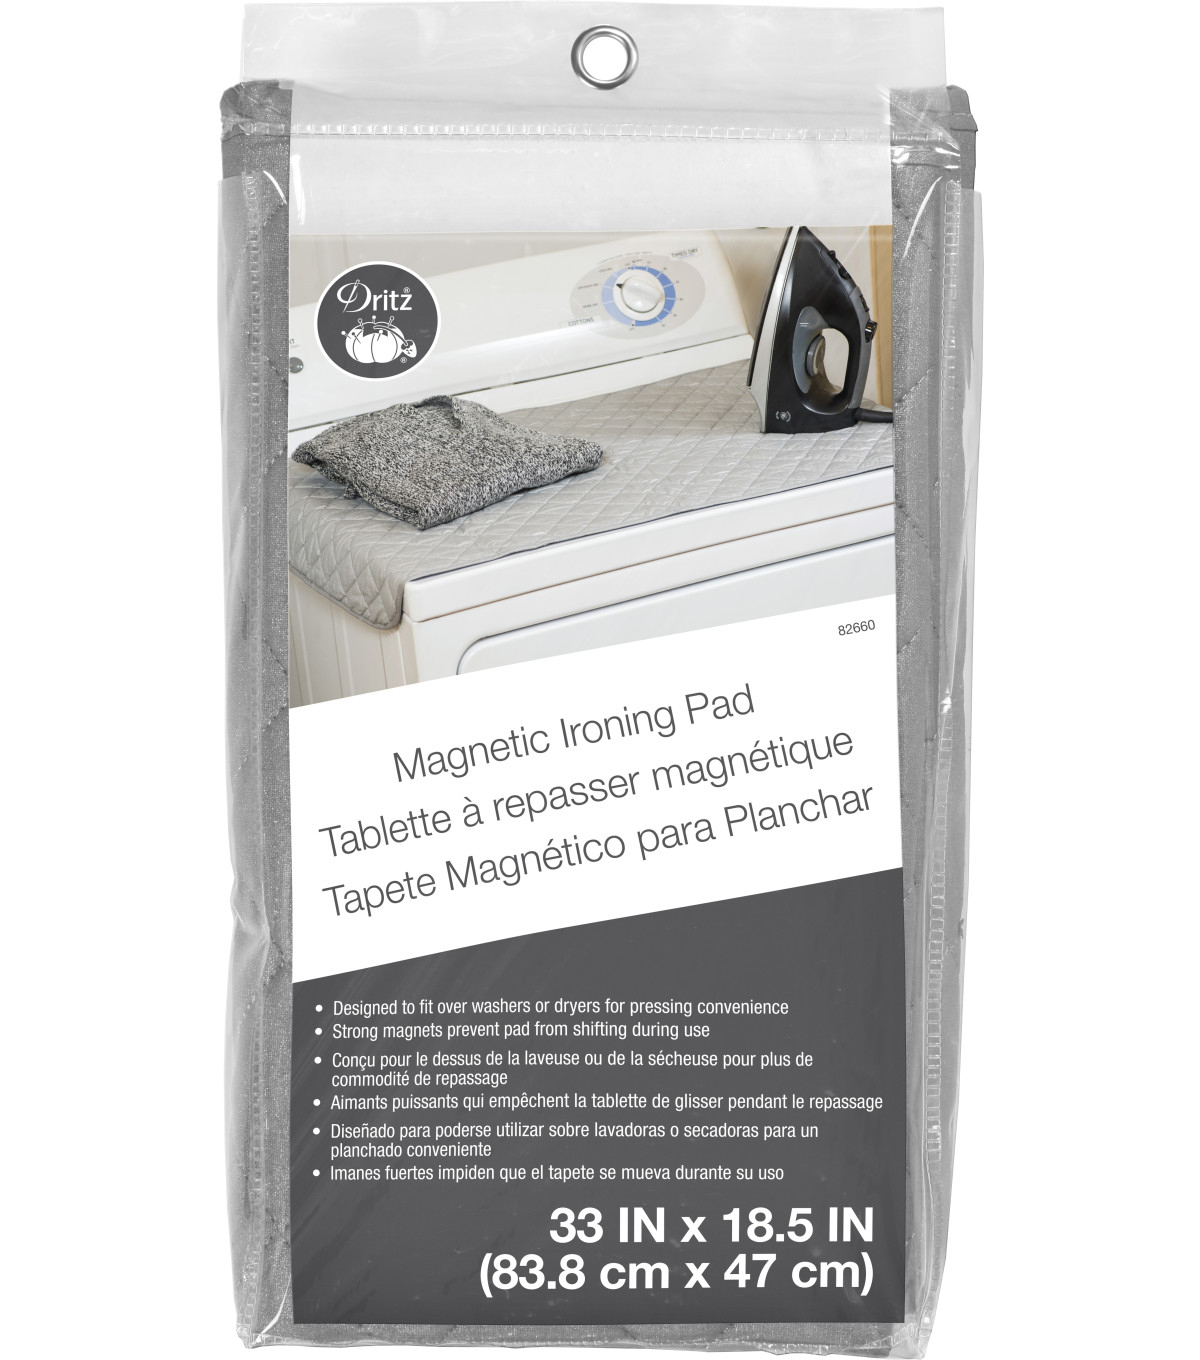 Dritz Magnetic Ironing Pad